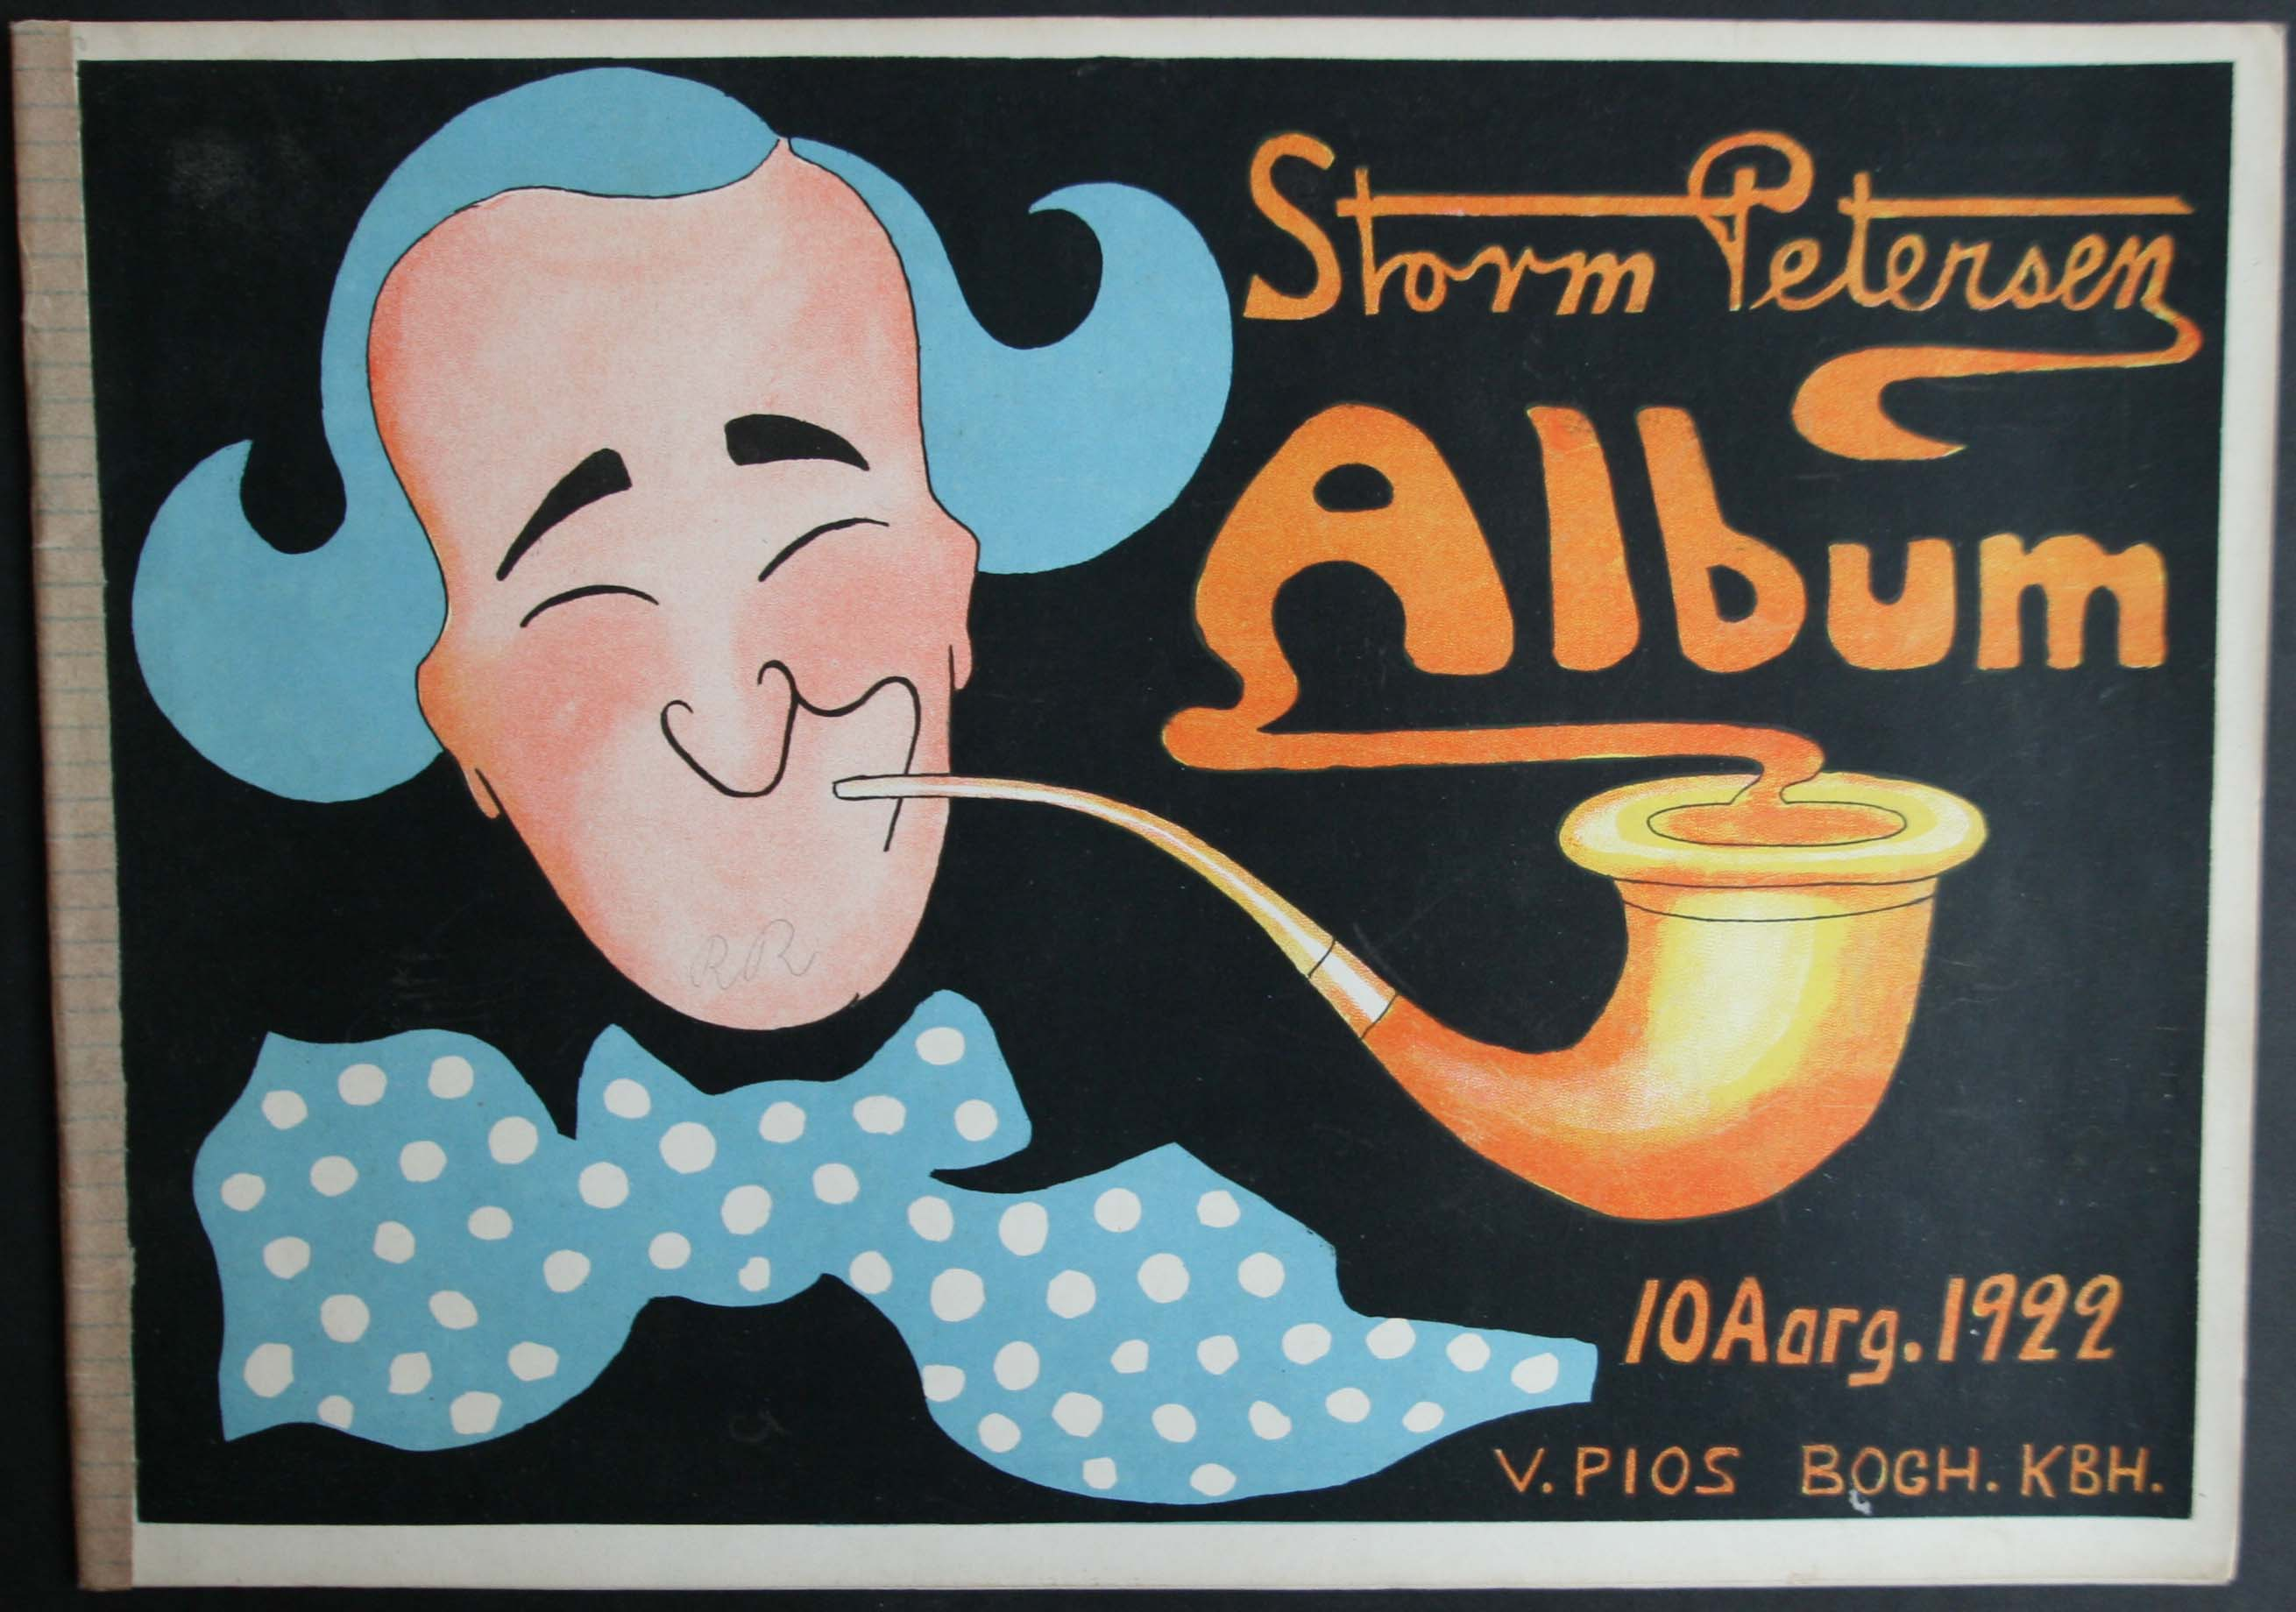 Robert Storm Petersen Storm P. Album 1922